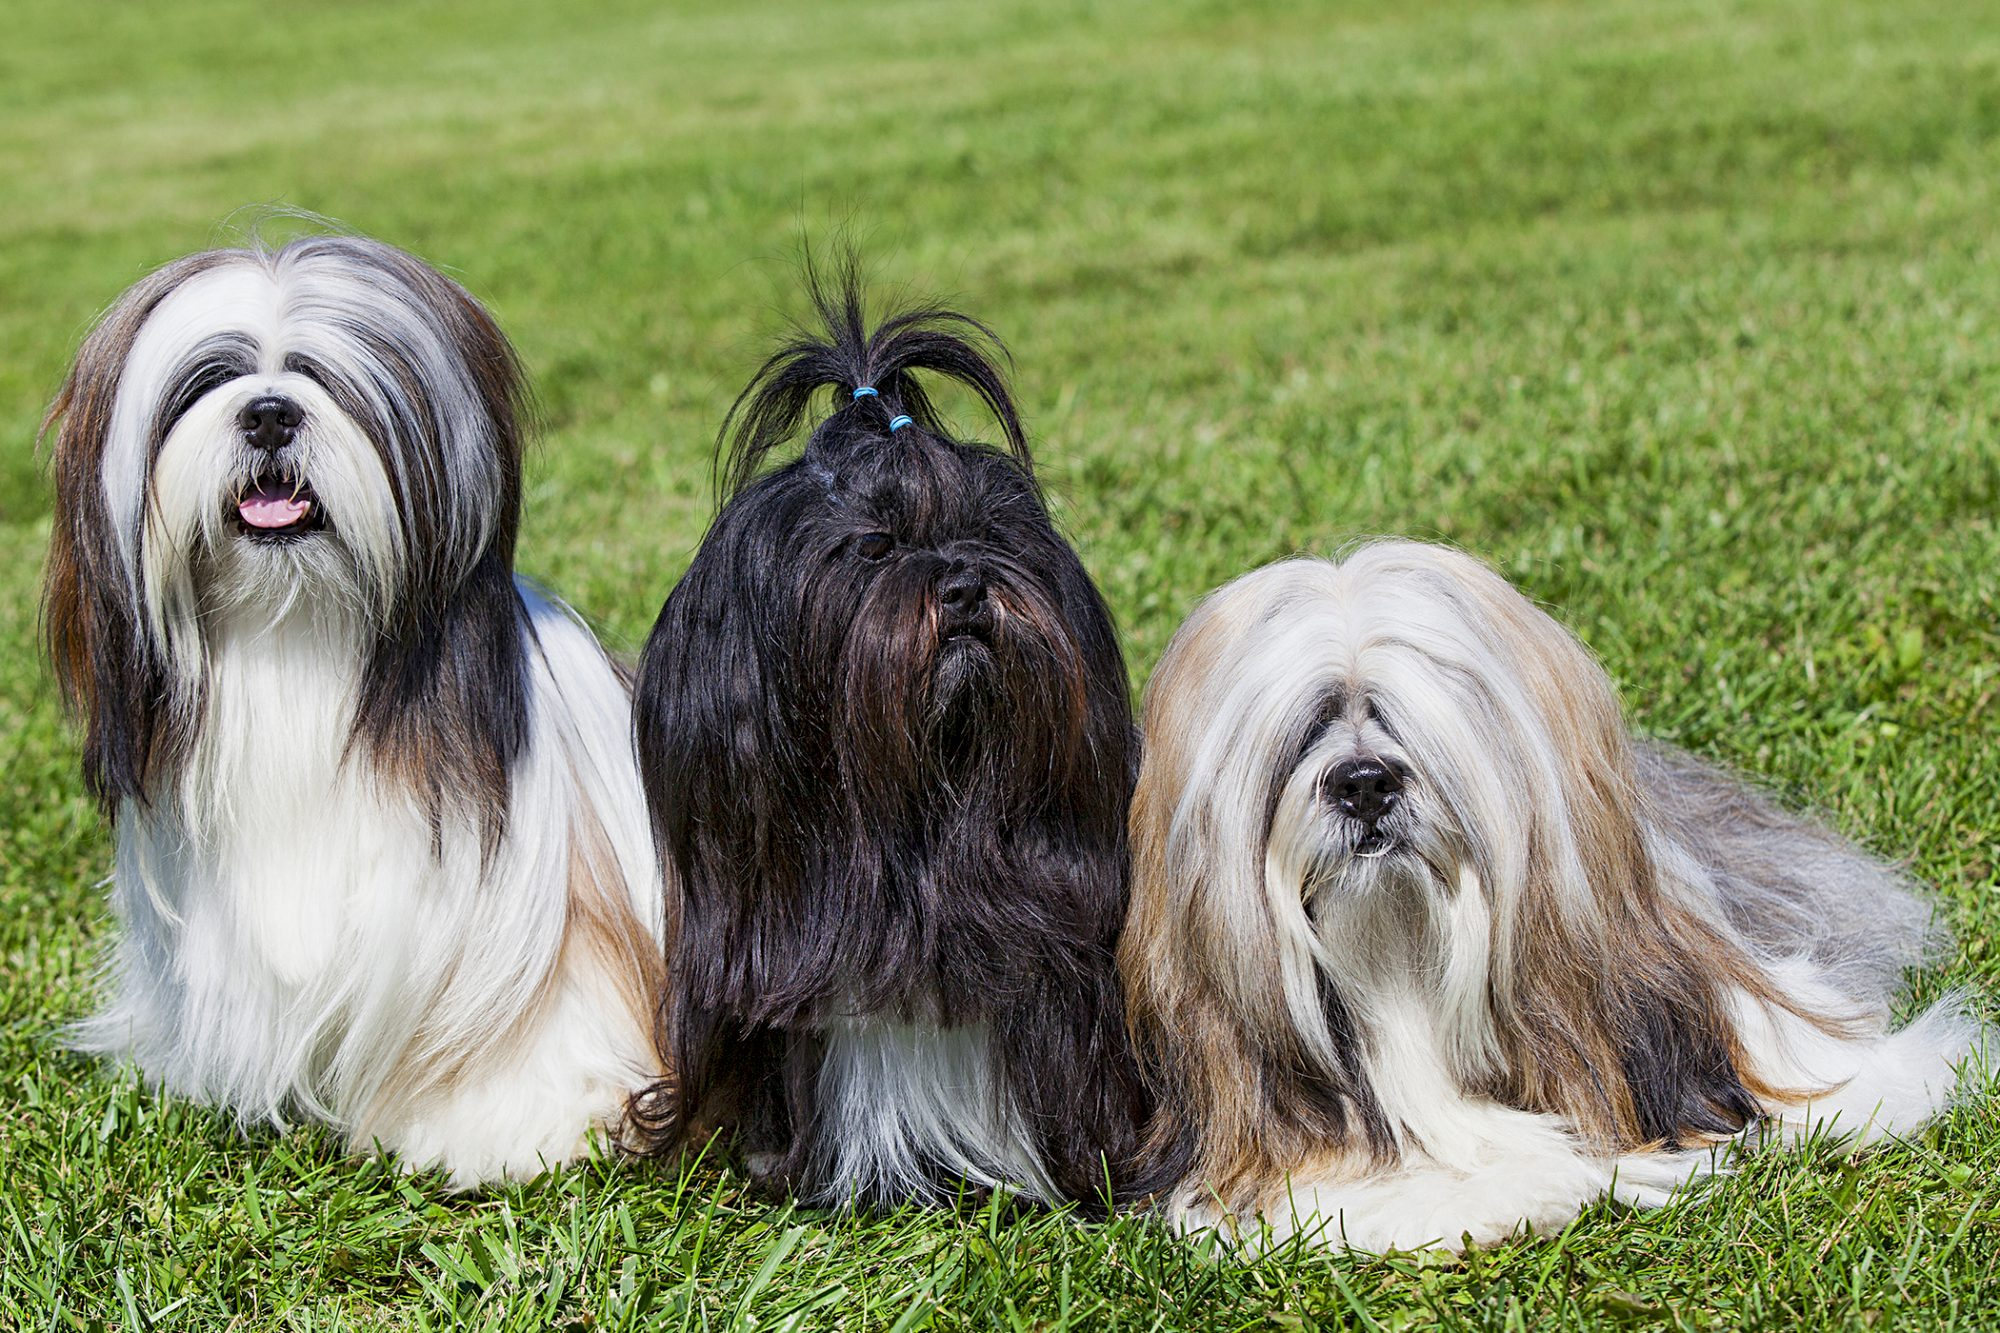 three lhasa apso dogs with long hair sitting outside in the grass